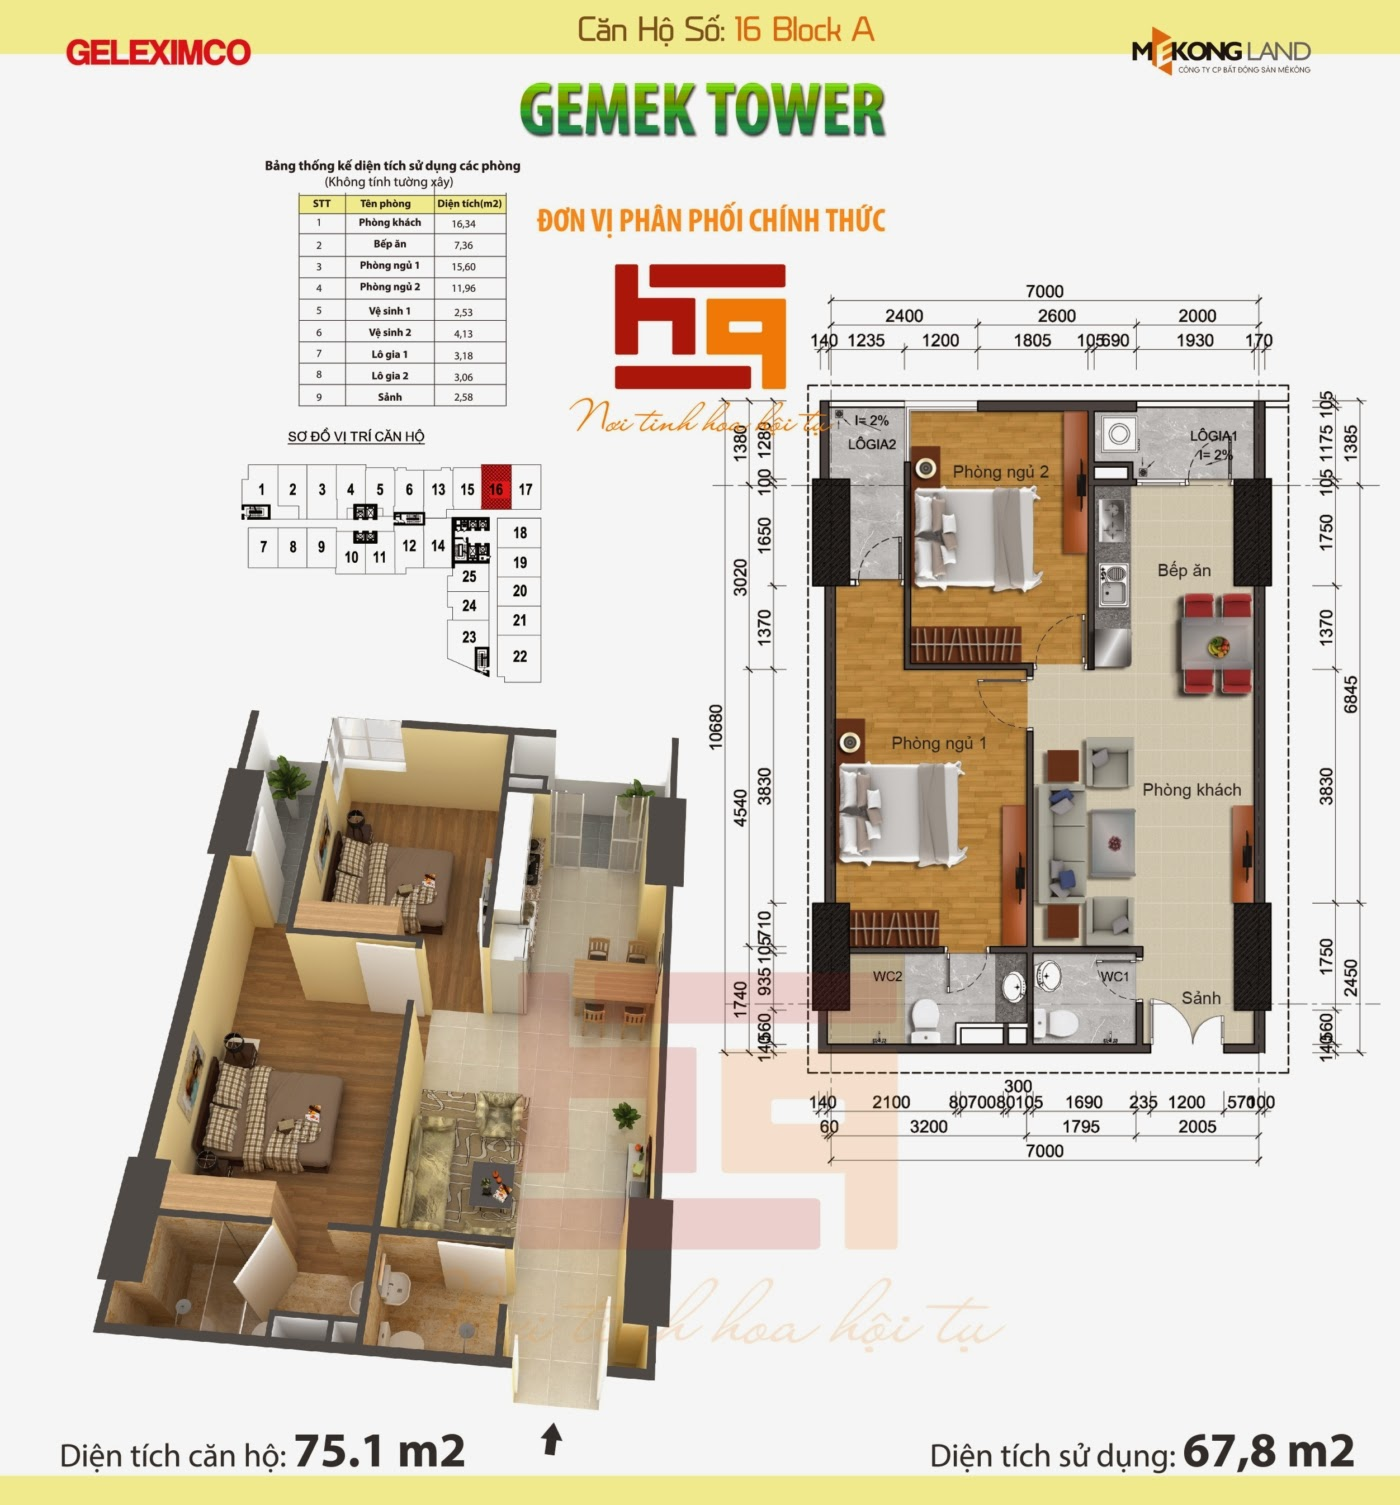 gemek-tower-can-16